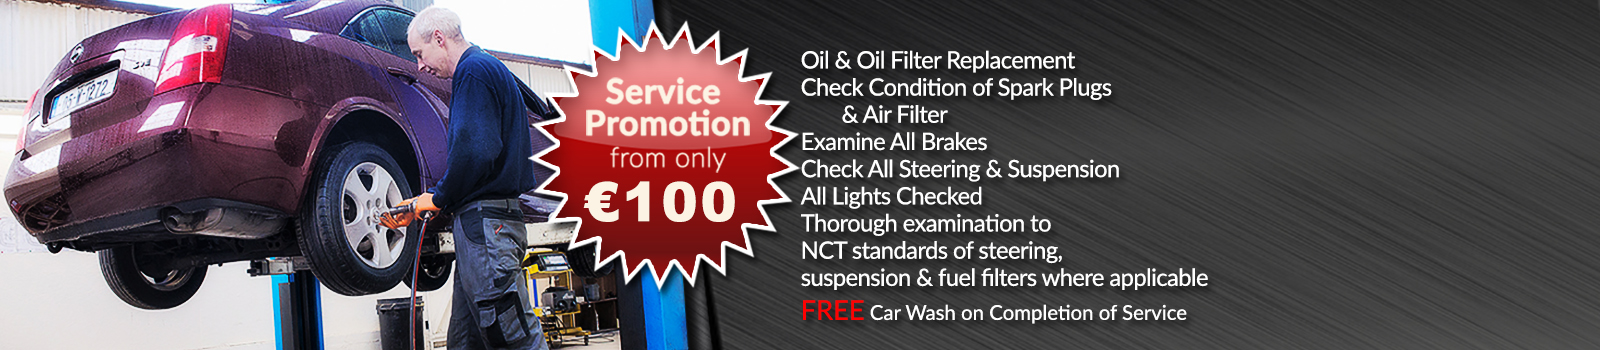 Car Service Promotion Waterford